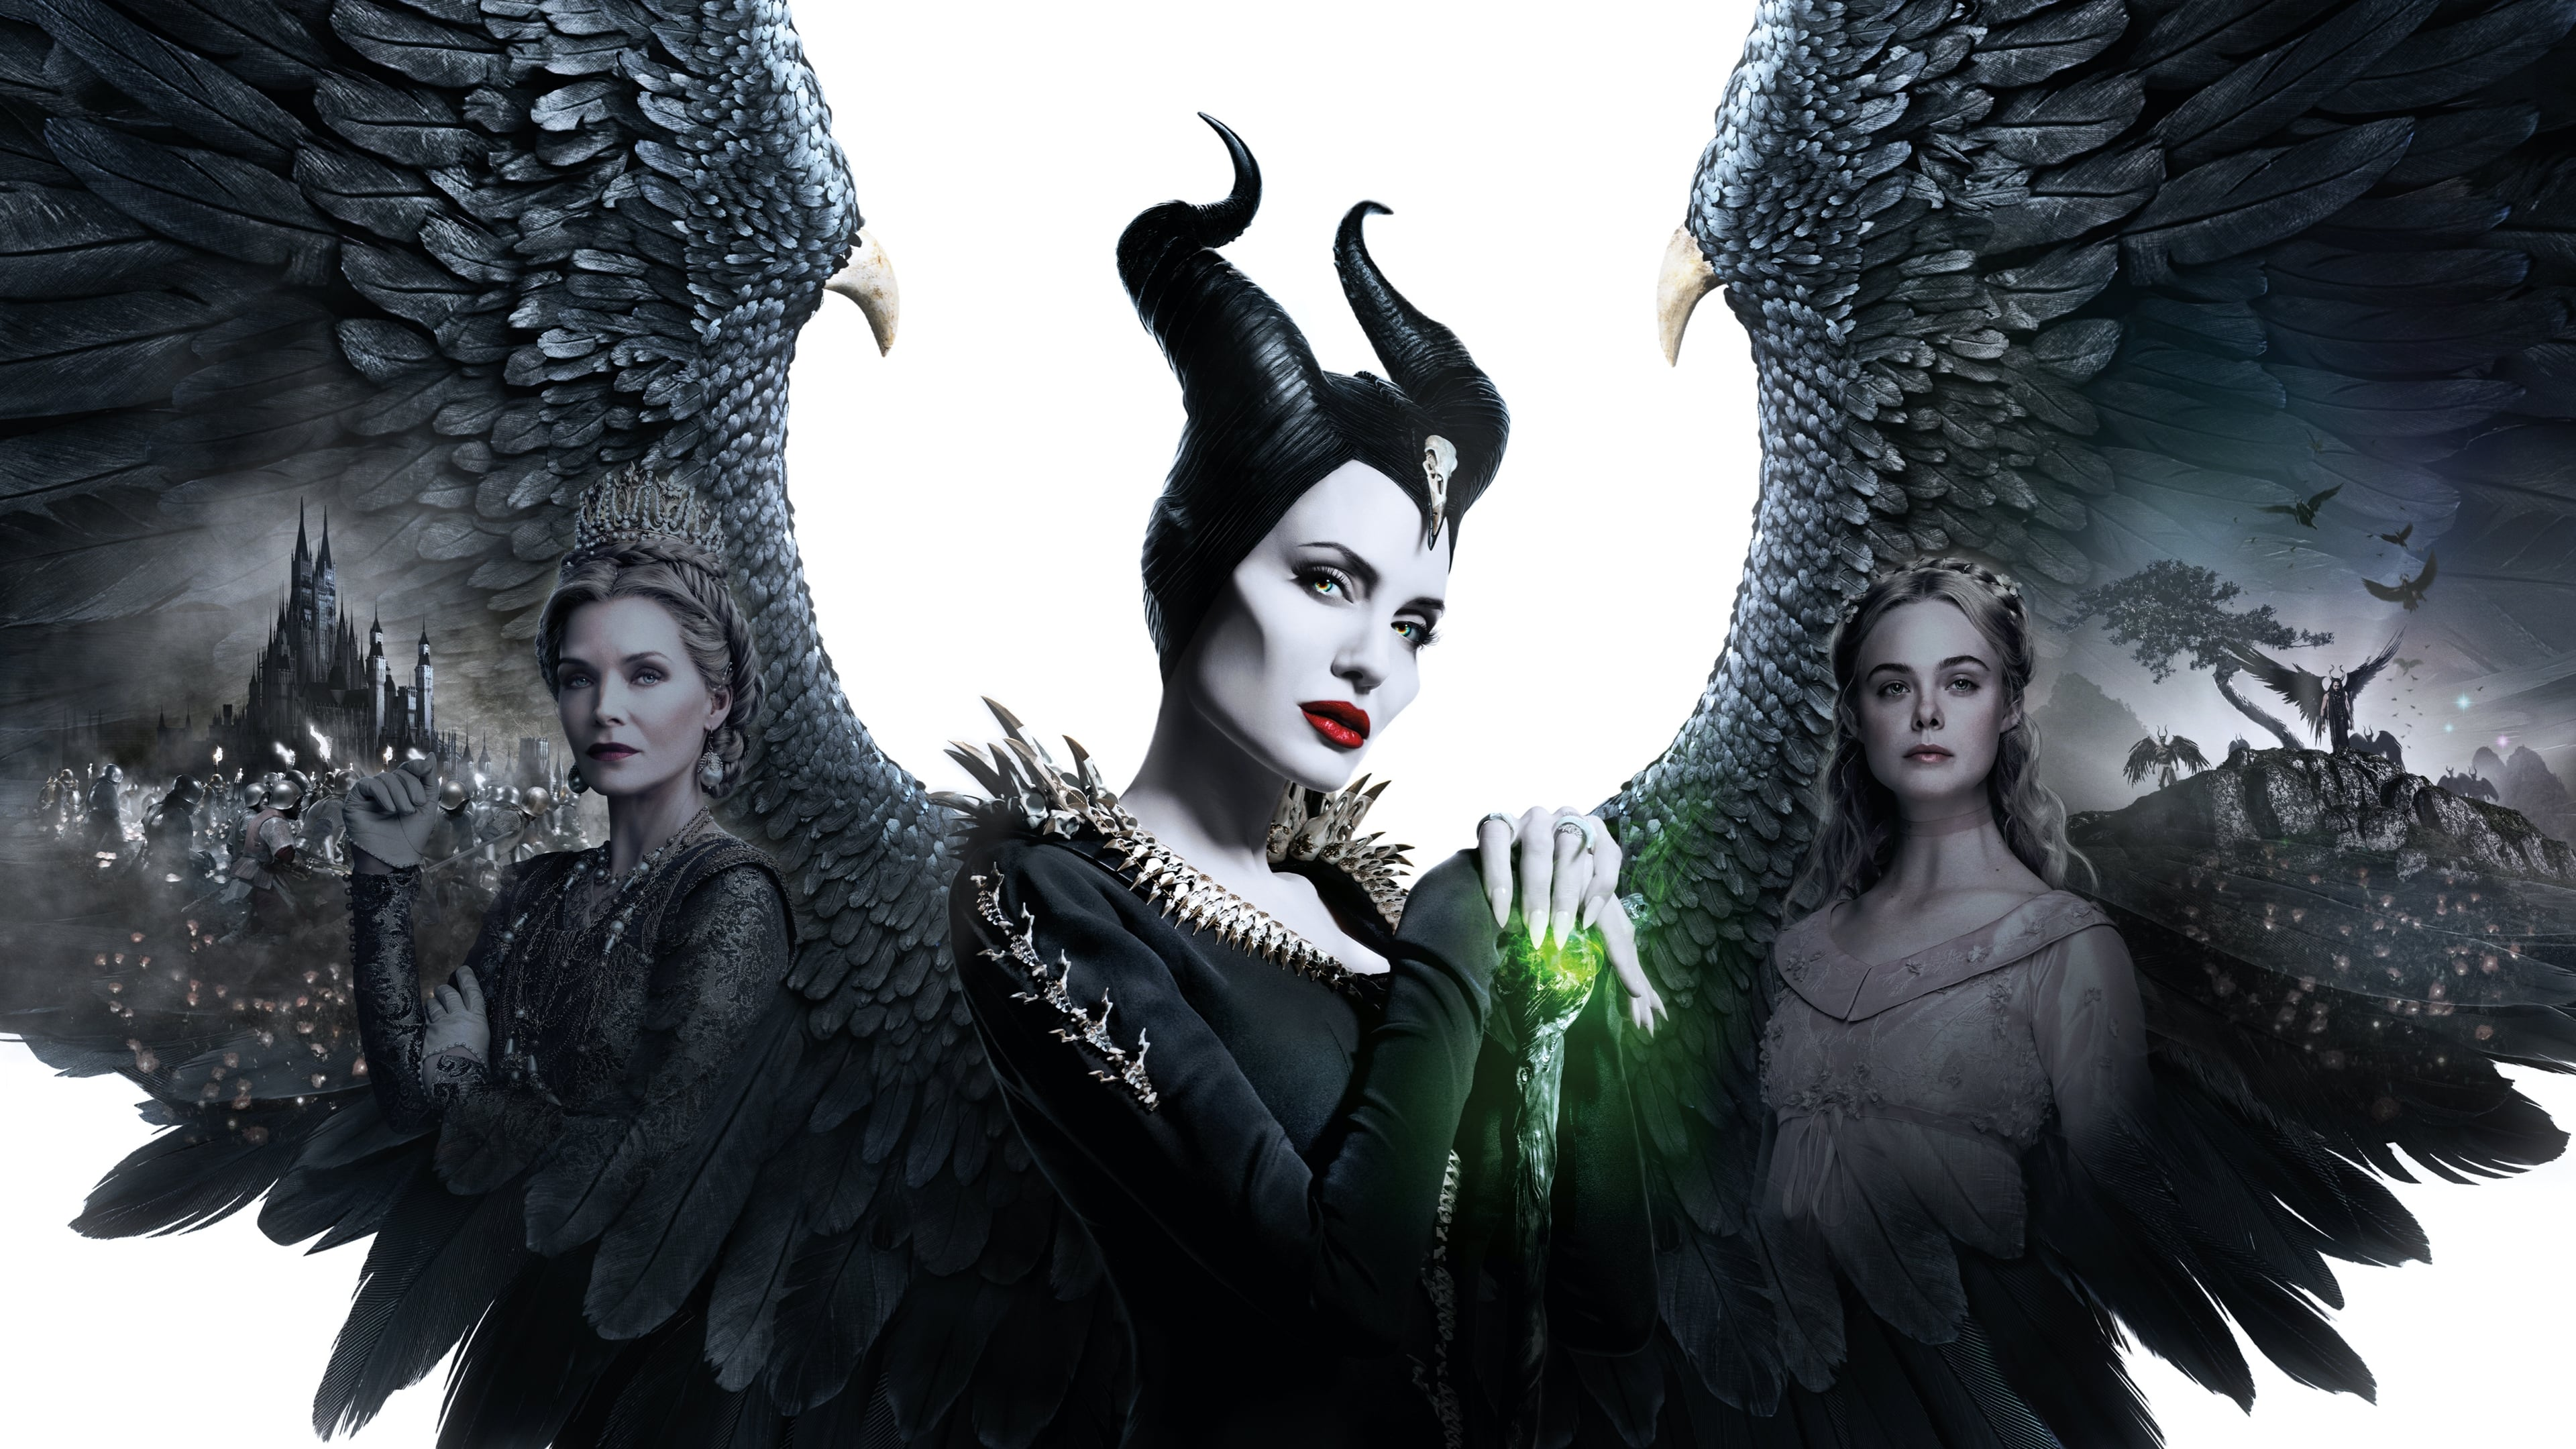 P U T L O C K E R Full Movie Online Maleficent Mistress